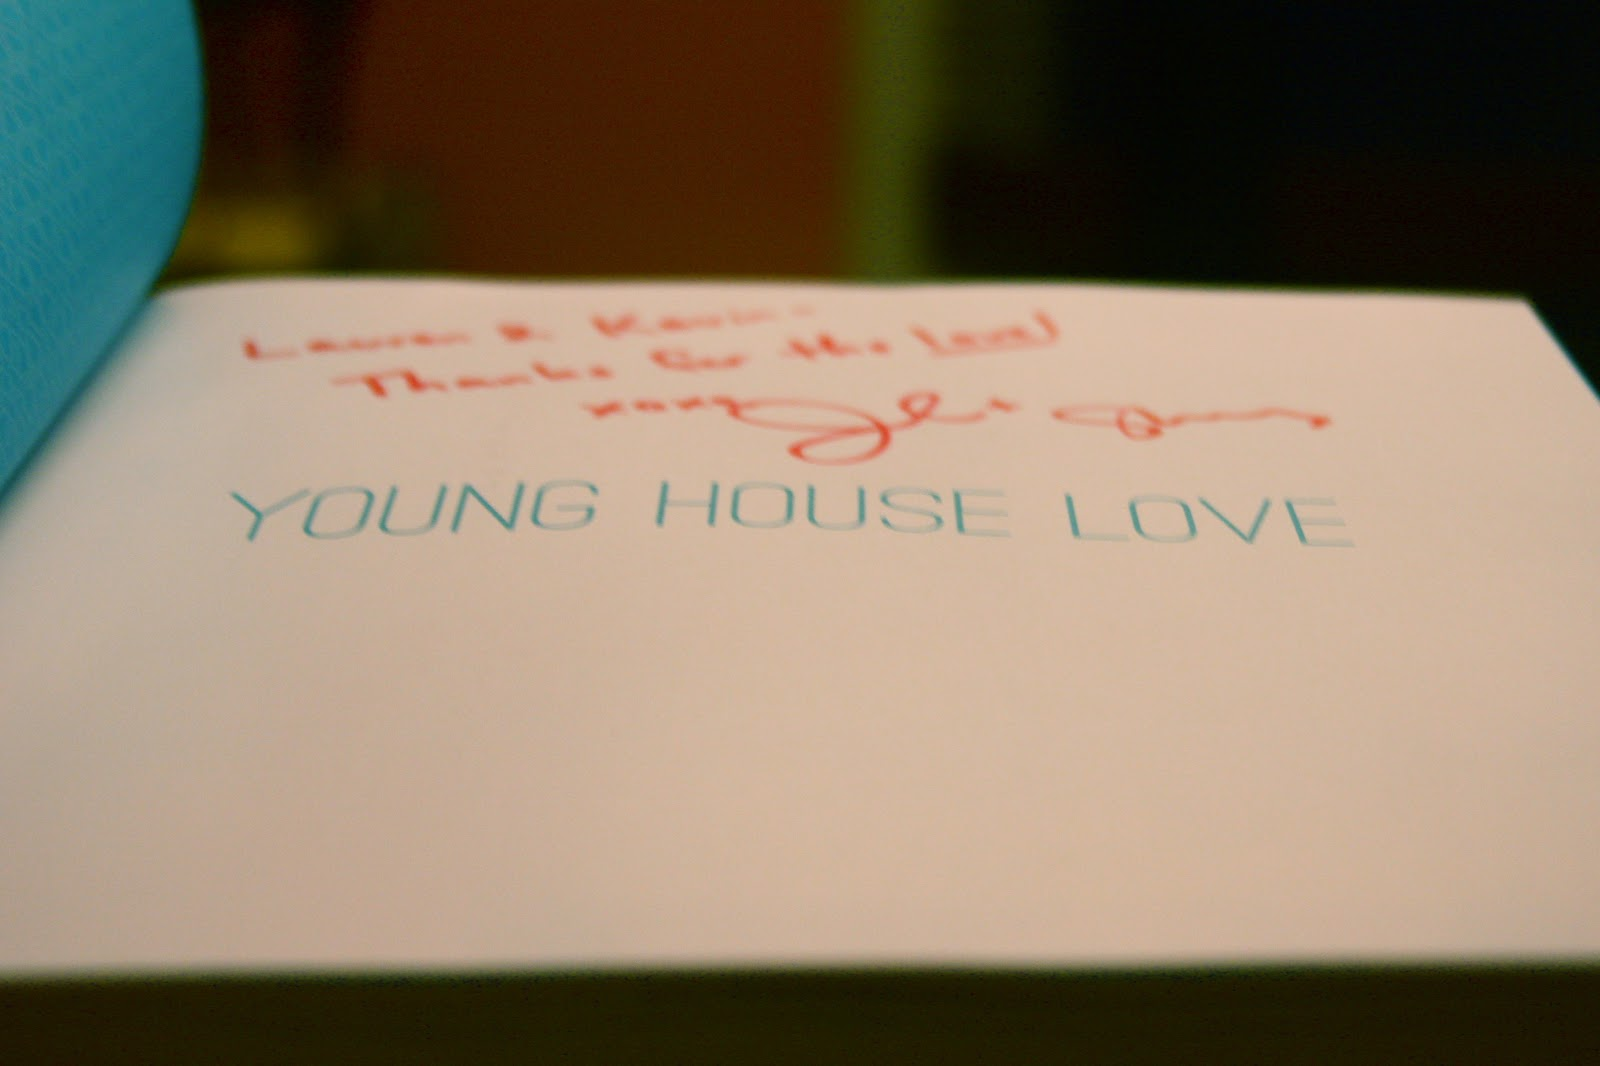 Young House Love signed book